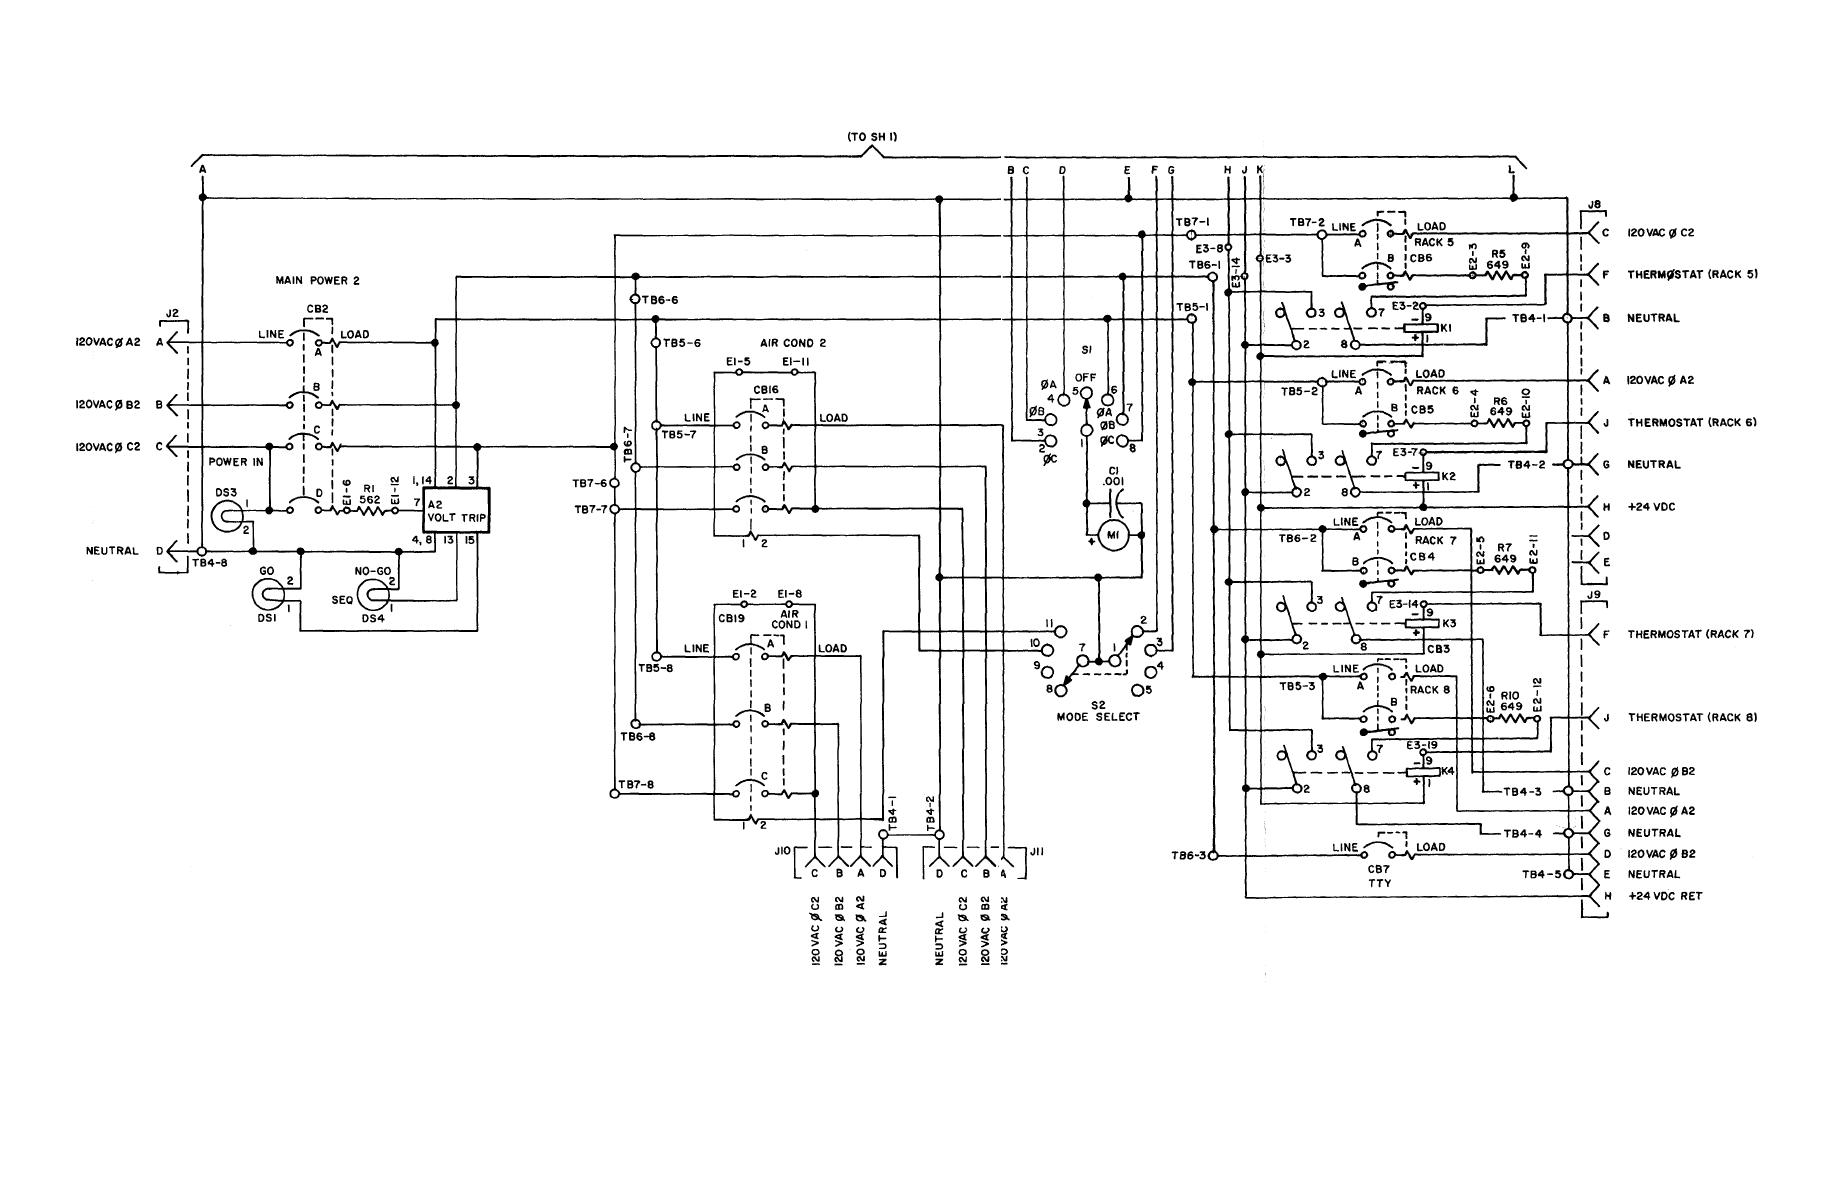 power distribution panel schematic wiring diagram sheet 2 of 2